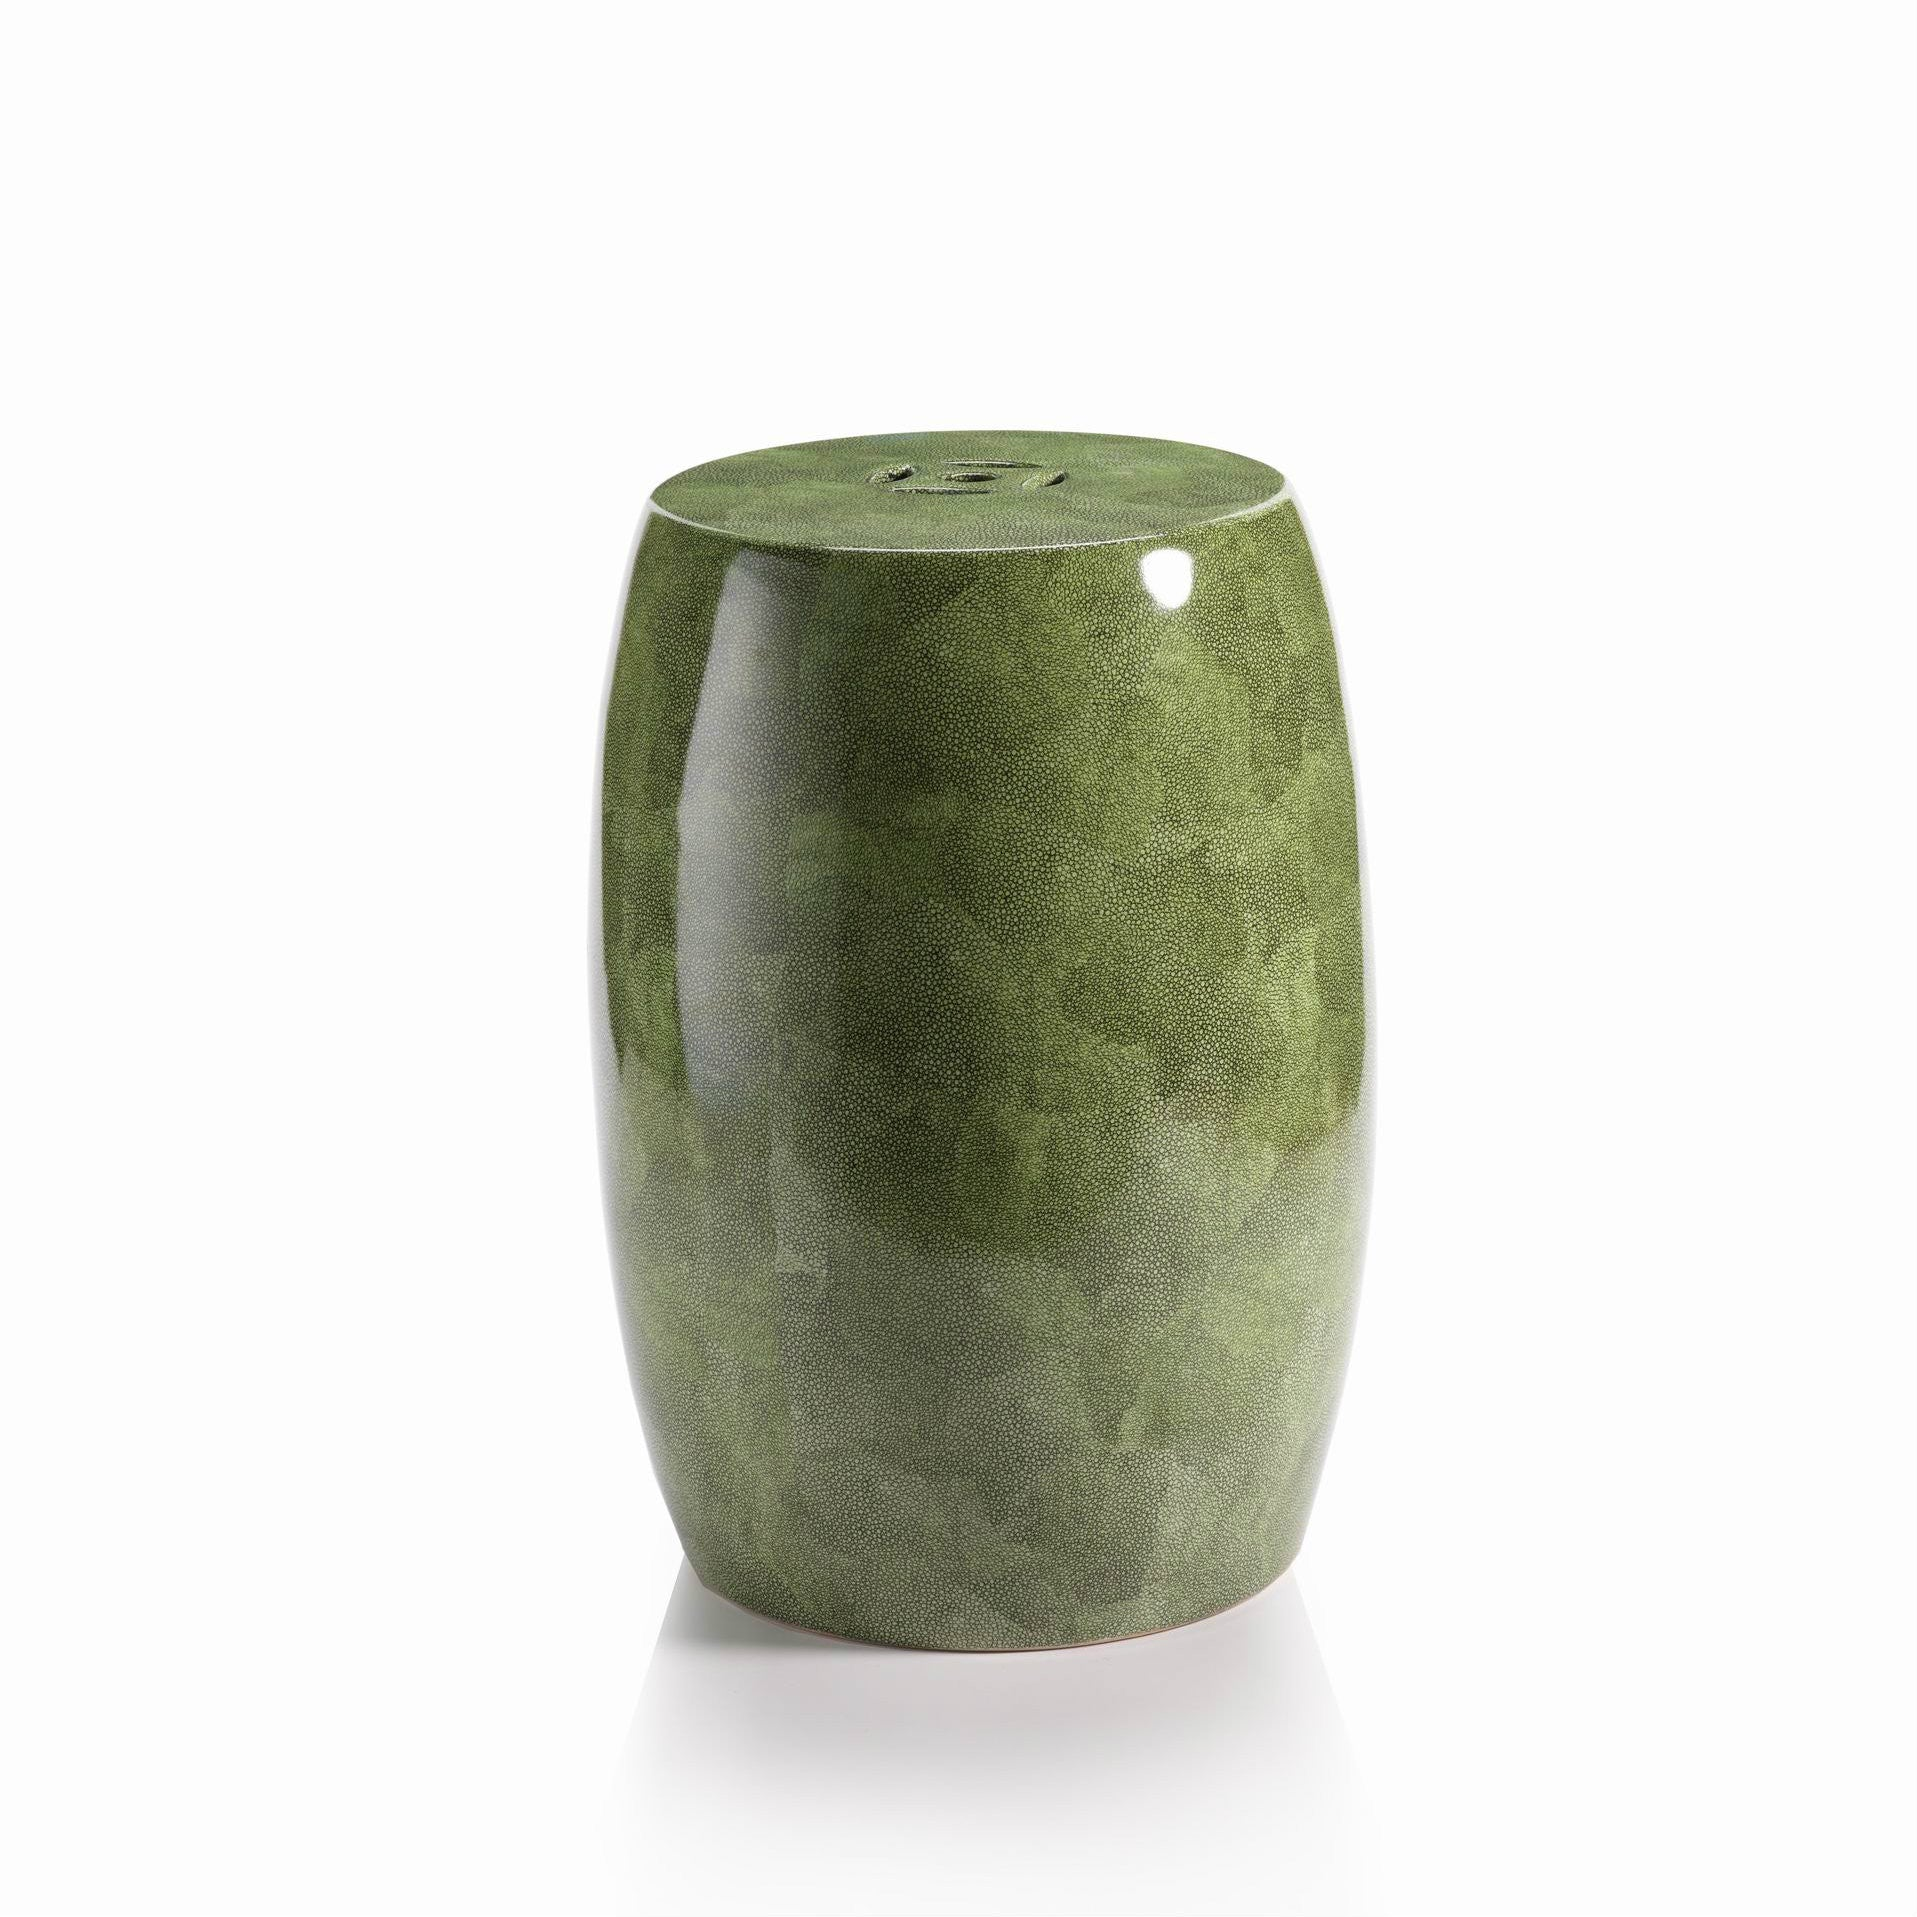 Ceramic Shagreen Stool - CARLYLE AVENUE